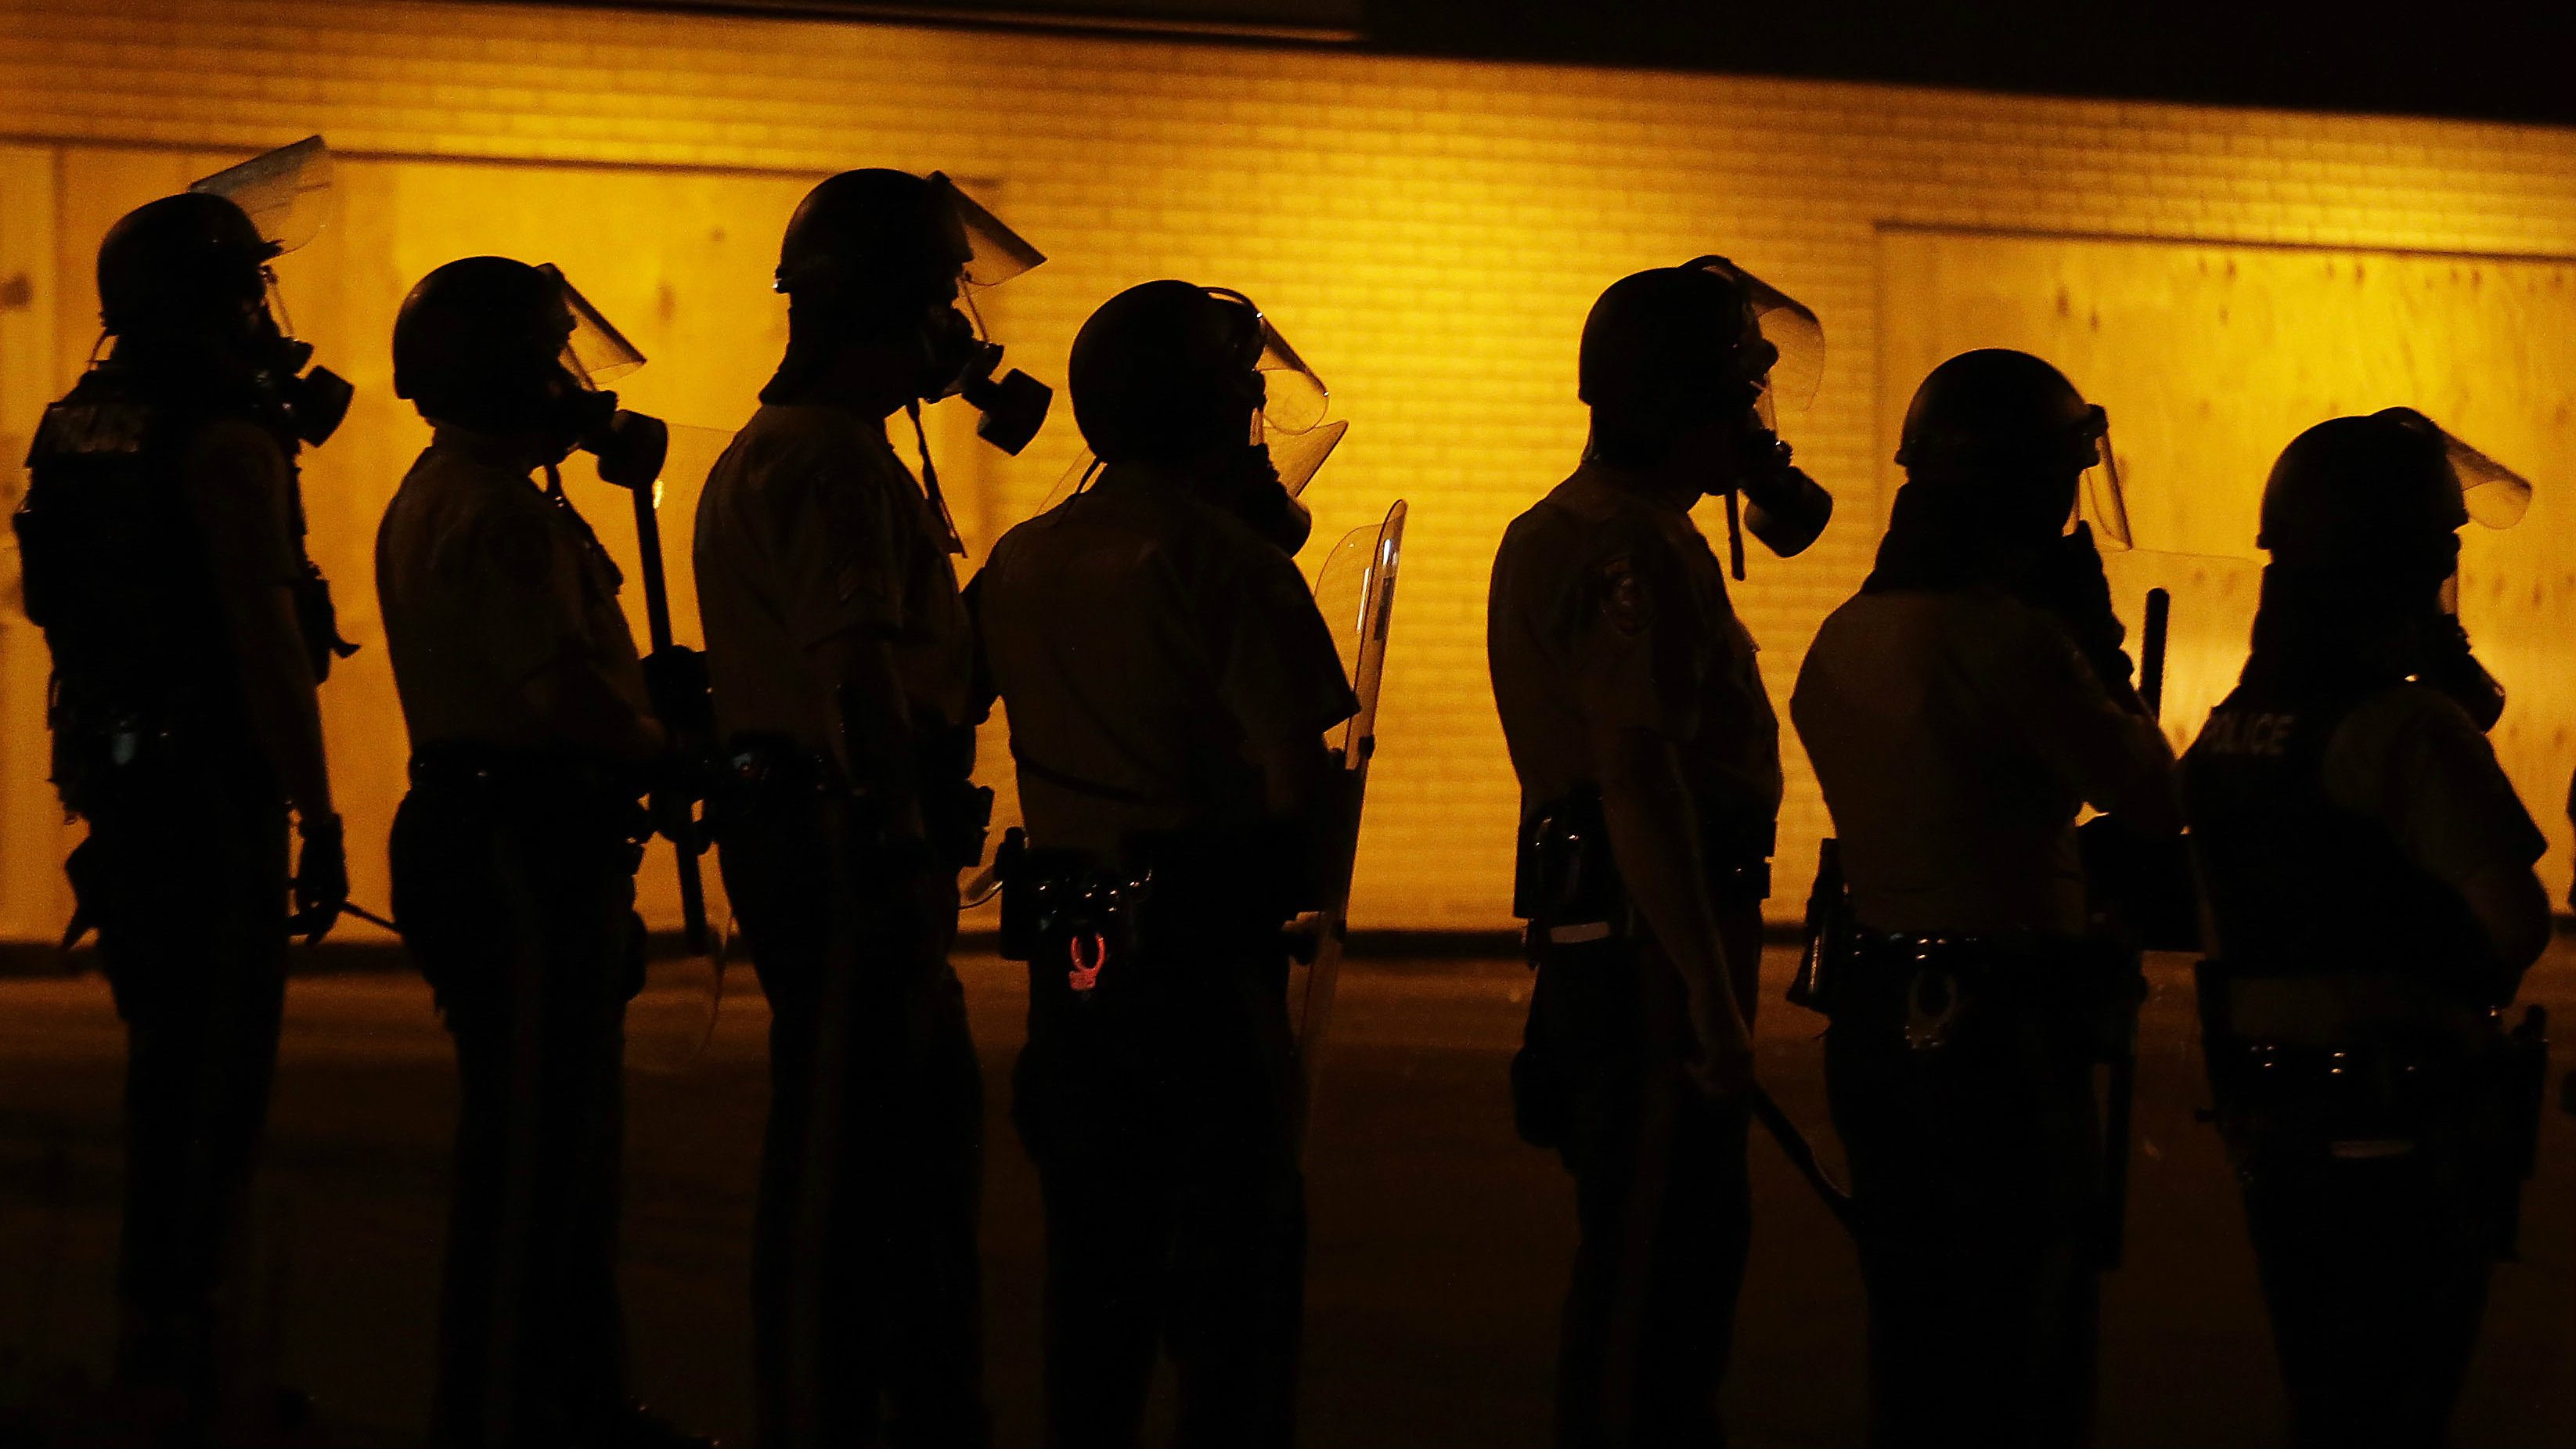 Police wait to advance after tear gas was used to disperse a crowd during a protest in 2014 for Michael Brown in Ferguson, Mo. unless